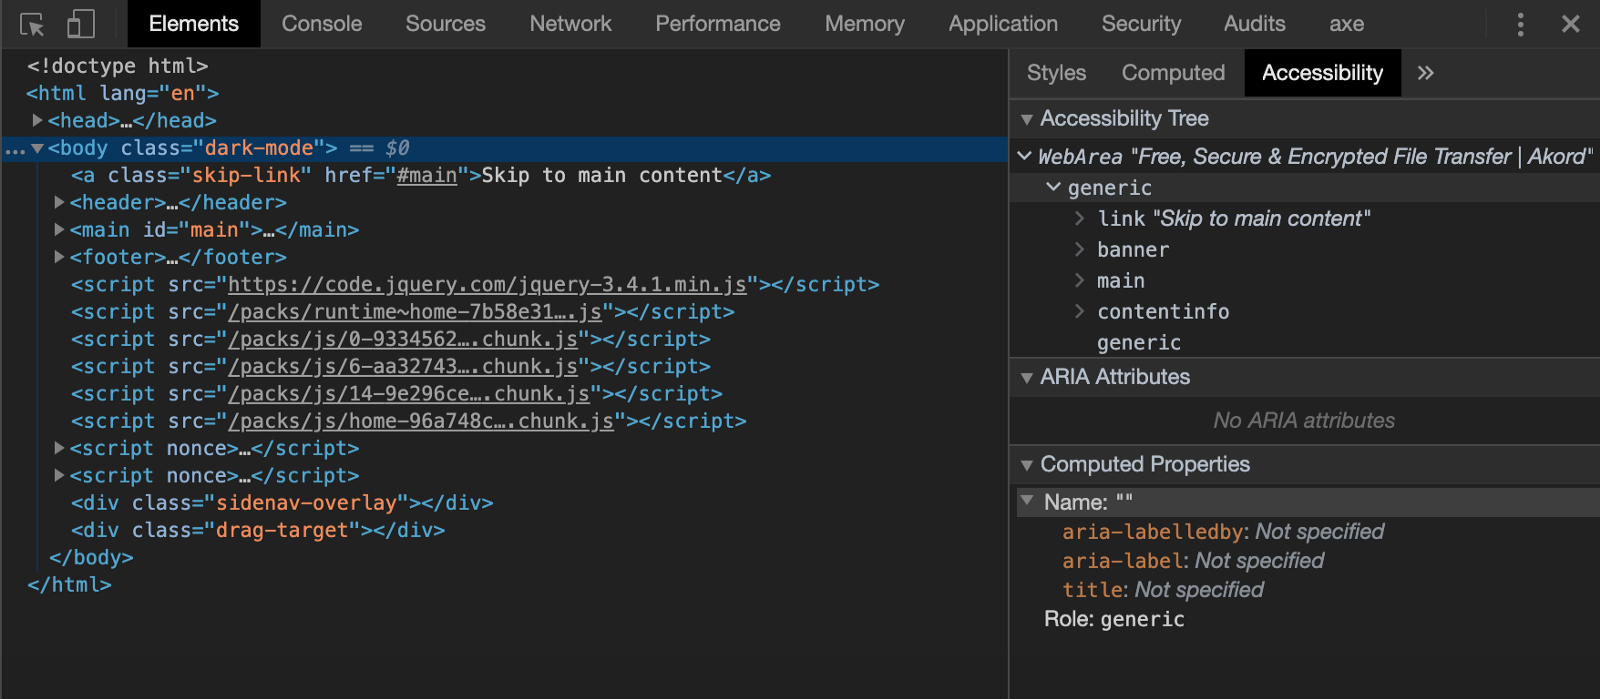 A screenshot of Chrome's Developer Tools and the Accessibility Tree panel